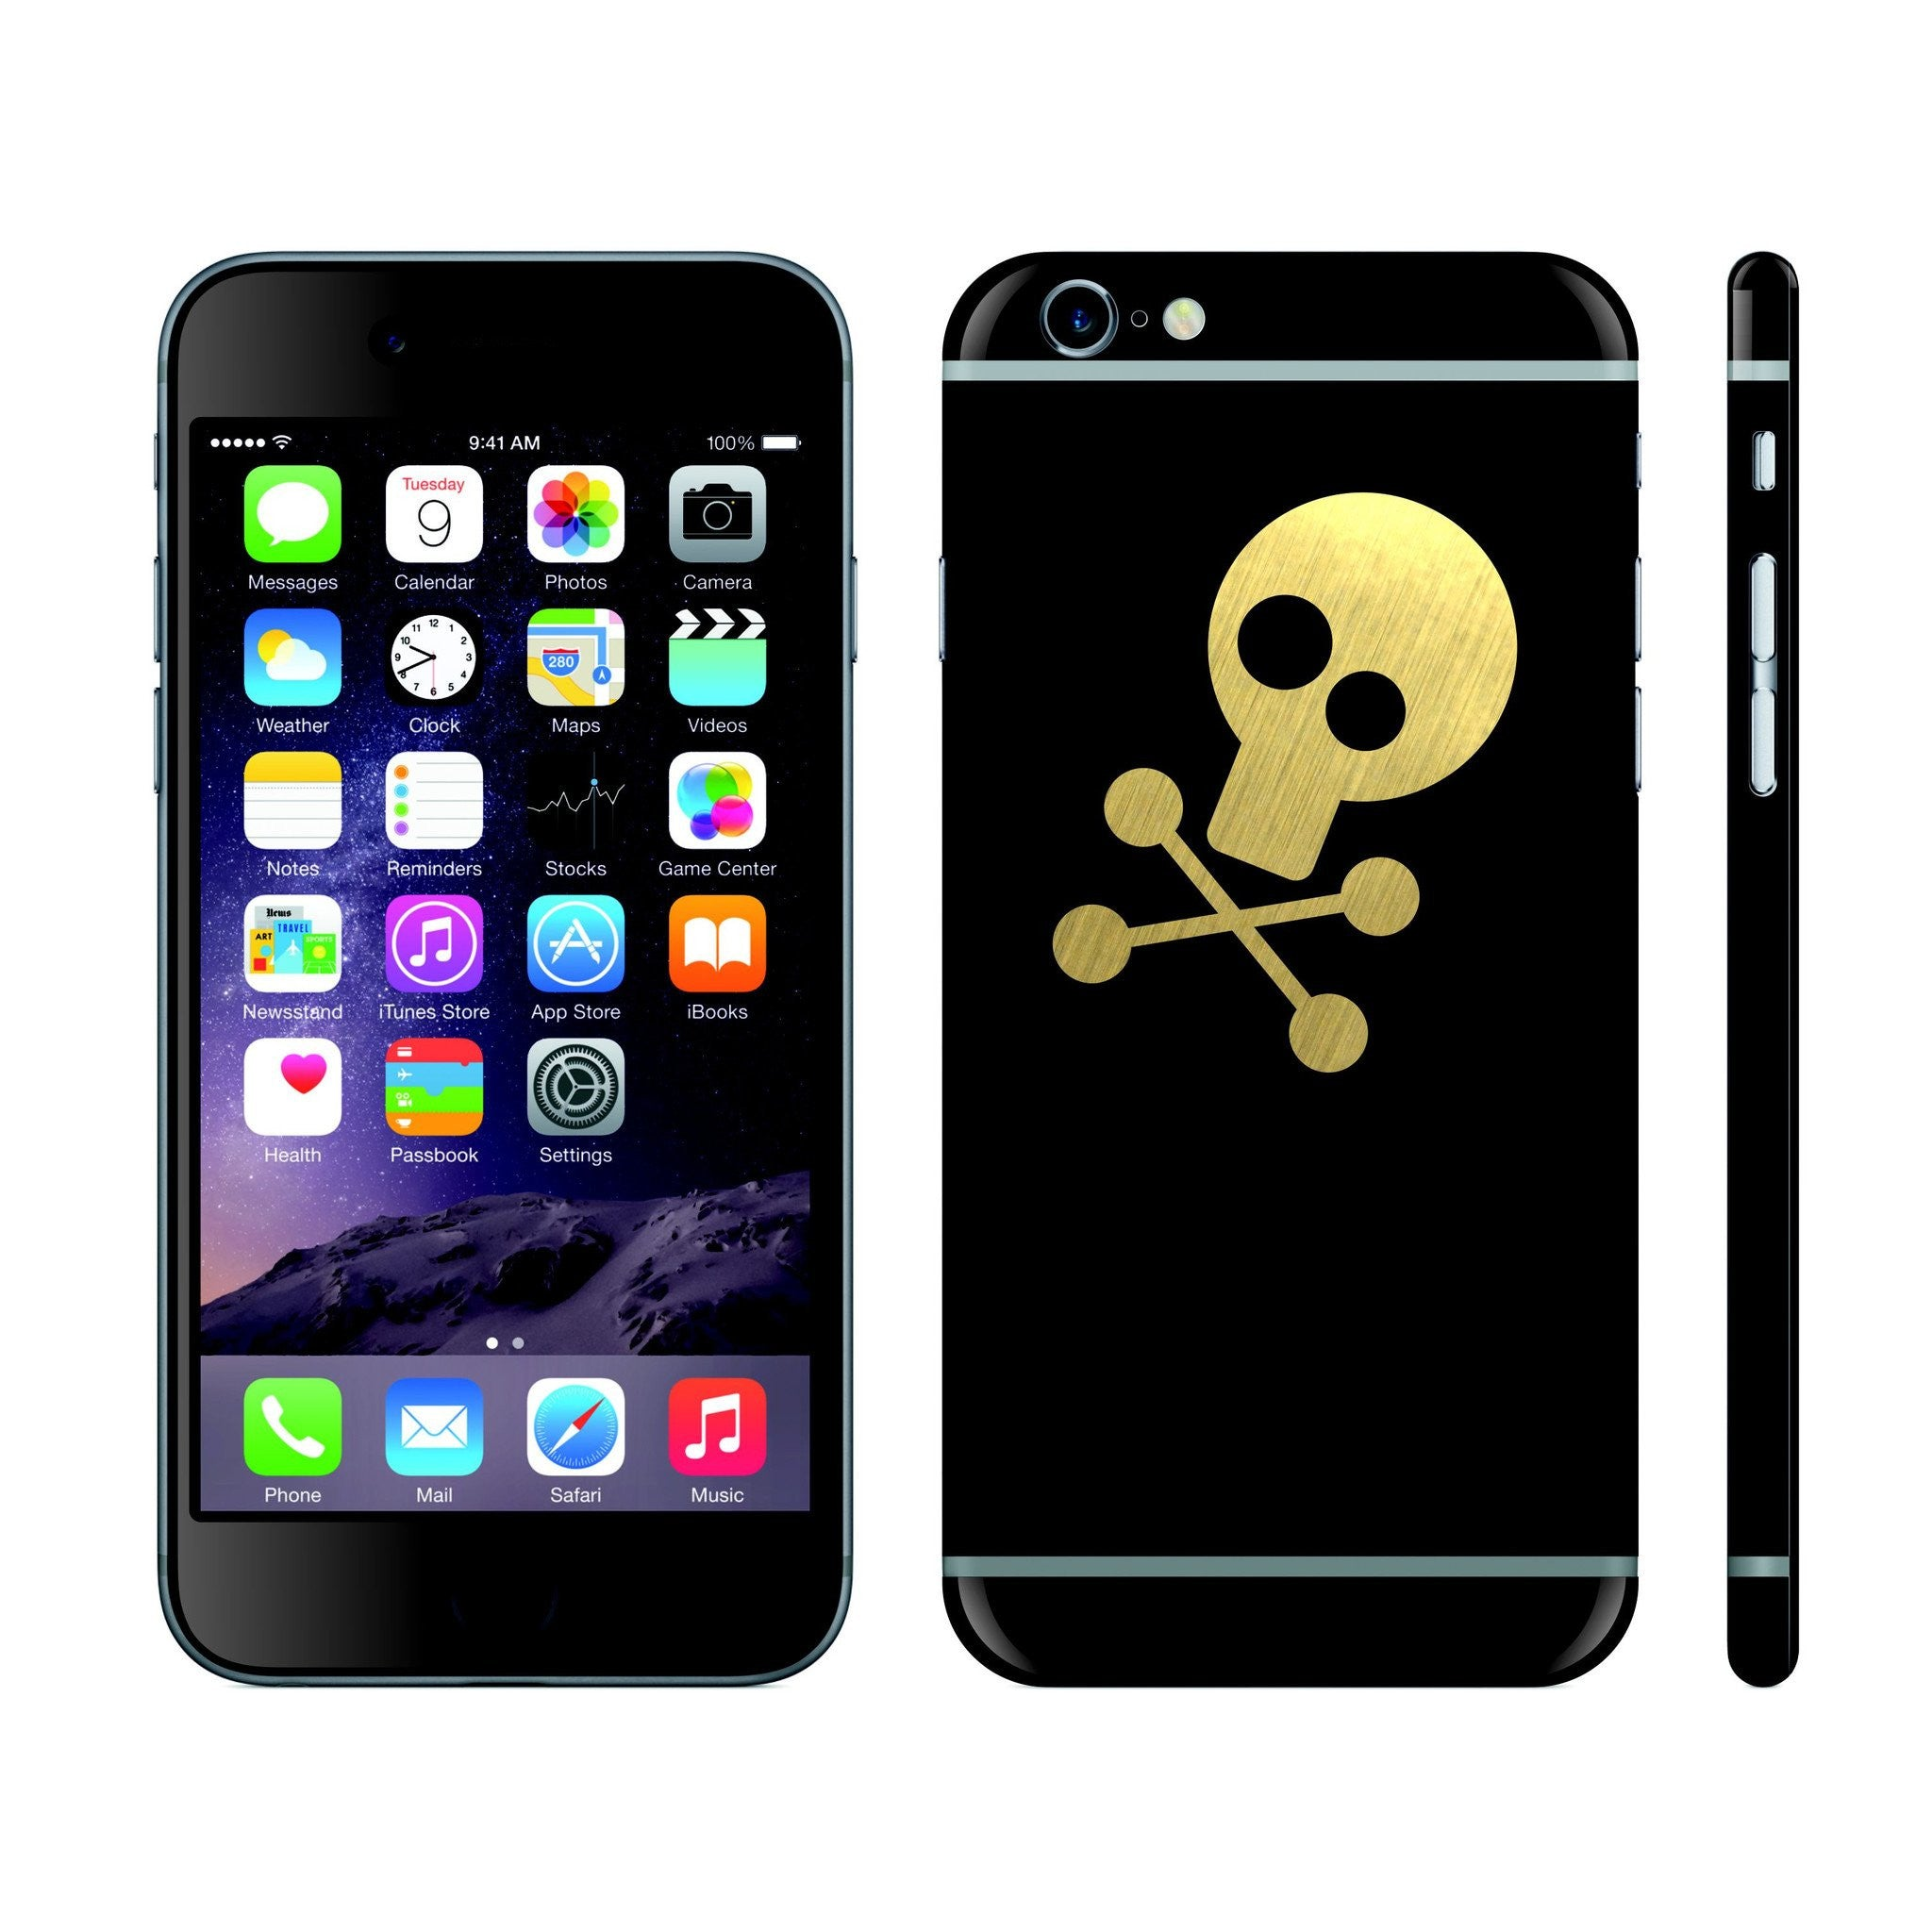 iPhone 6S Black Matt and Brushed Gold Skull Custom Designs Skin Cover Decal Wrap Sticker Protector by EasySkinz